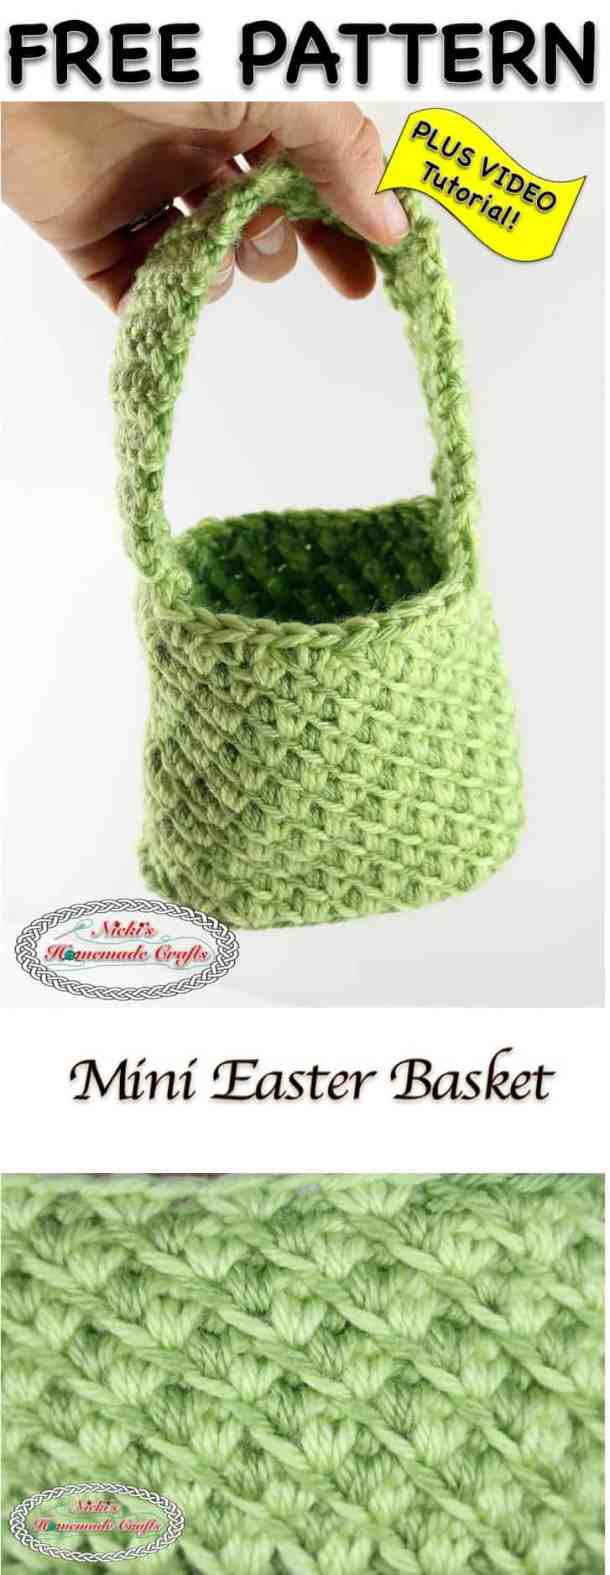 Mini Easter Basket - Free Crochet Pattern by Nicki's Homemade Crafts